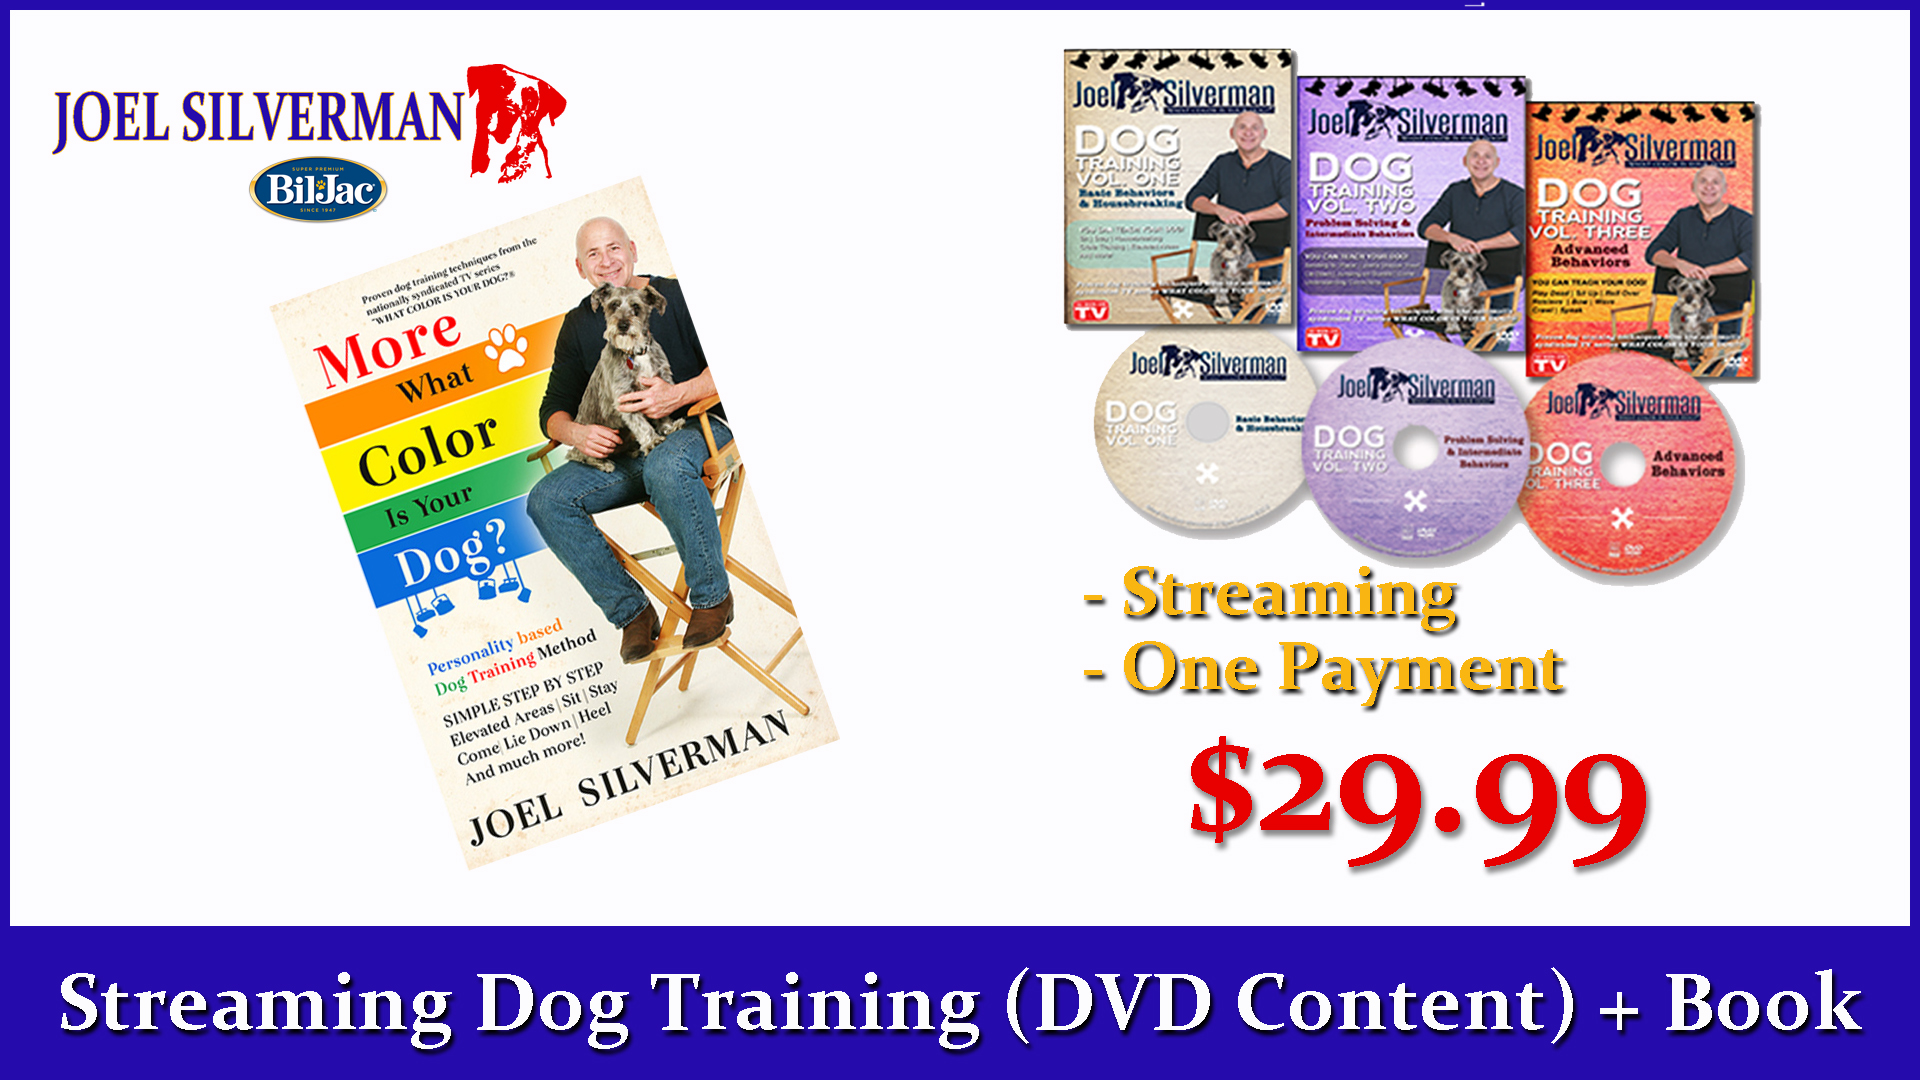 Streaming Dog Training – Basic, Intermediate, And Advanced + More What Color Is Your Dog?